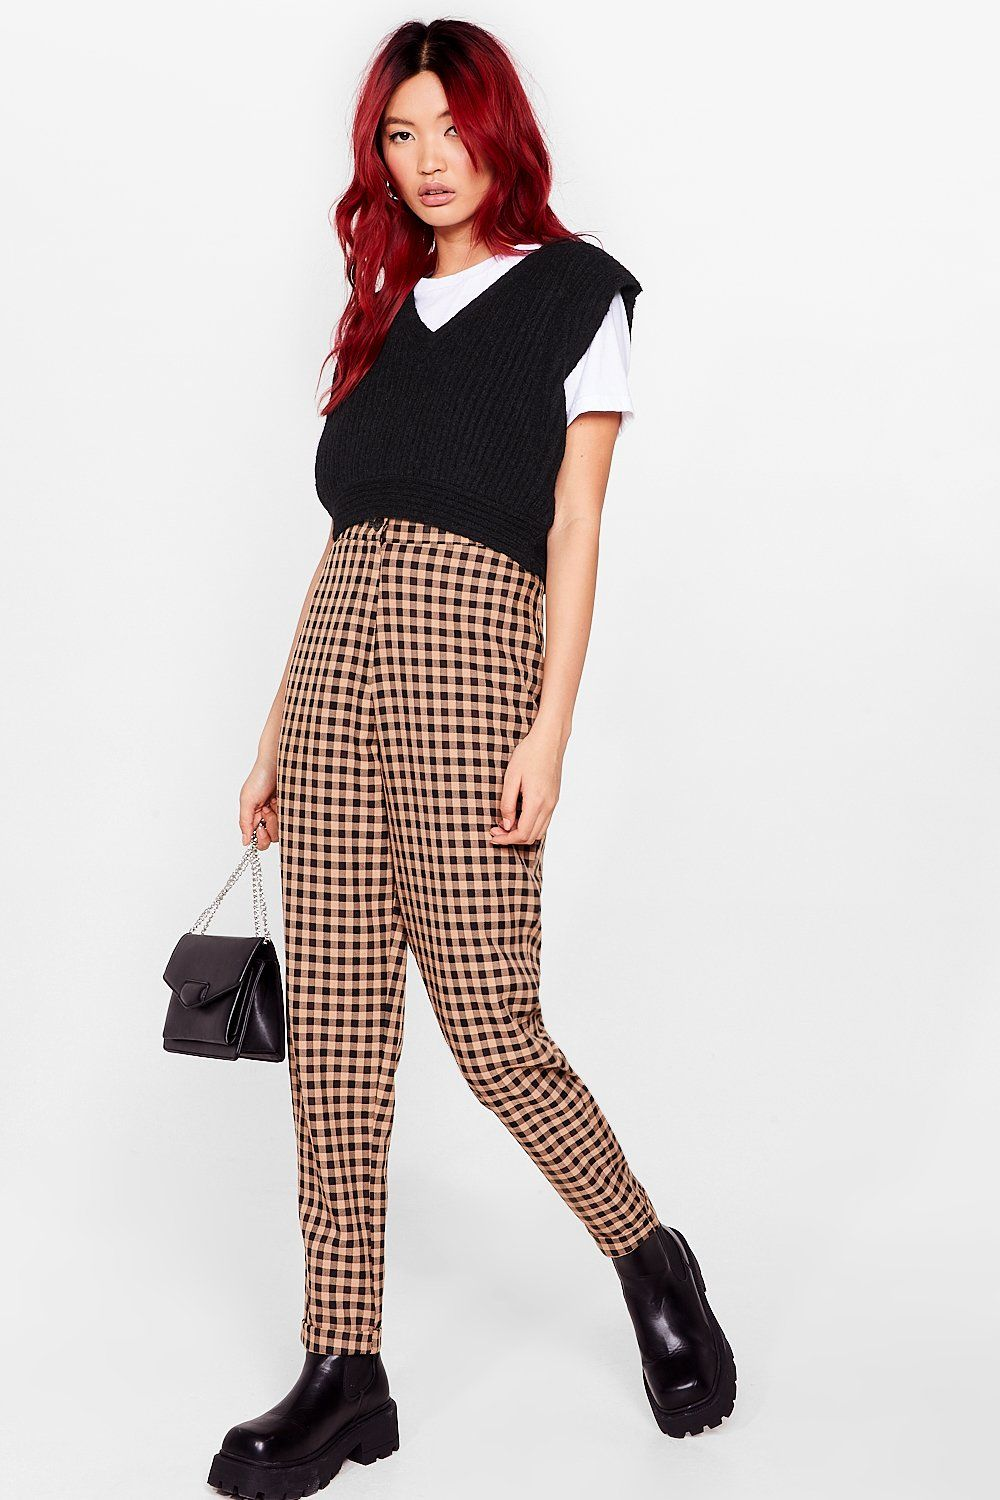 Plaid tailored pants for dark academia outfits